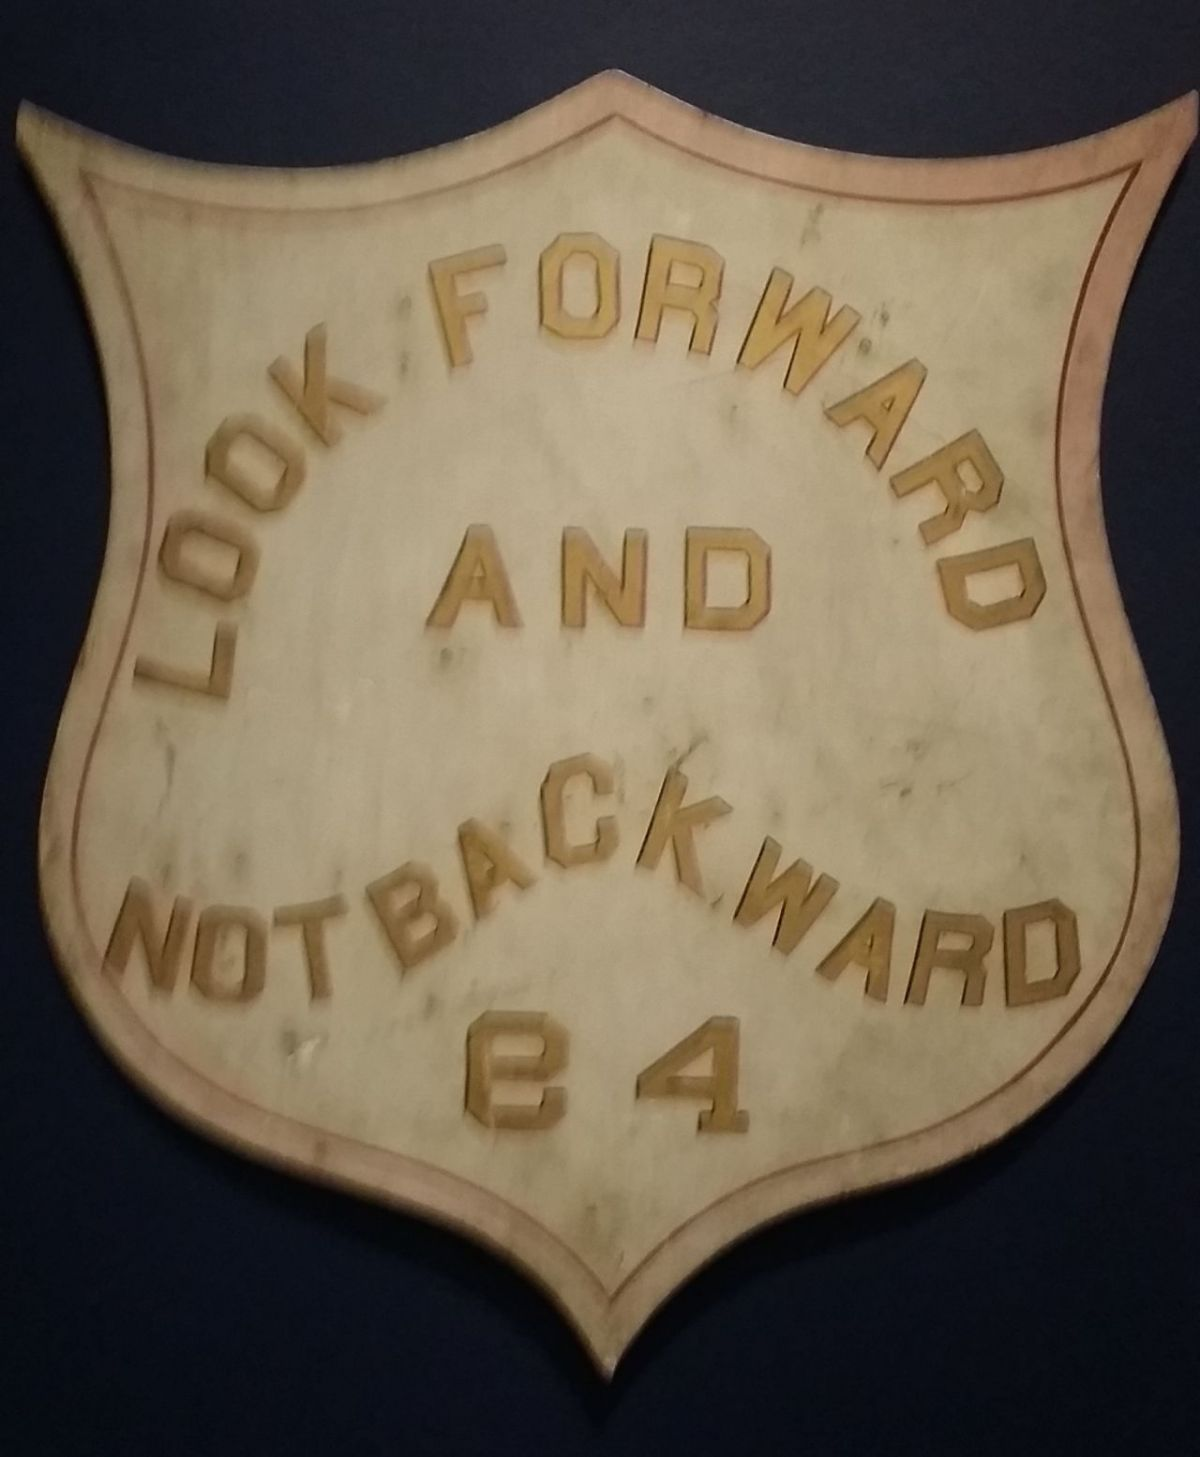 A Masonic or Odd Fellows sign.